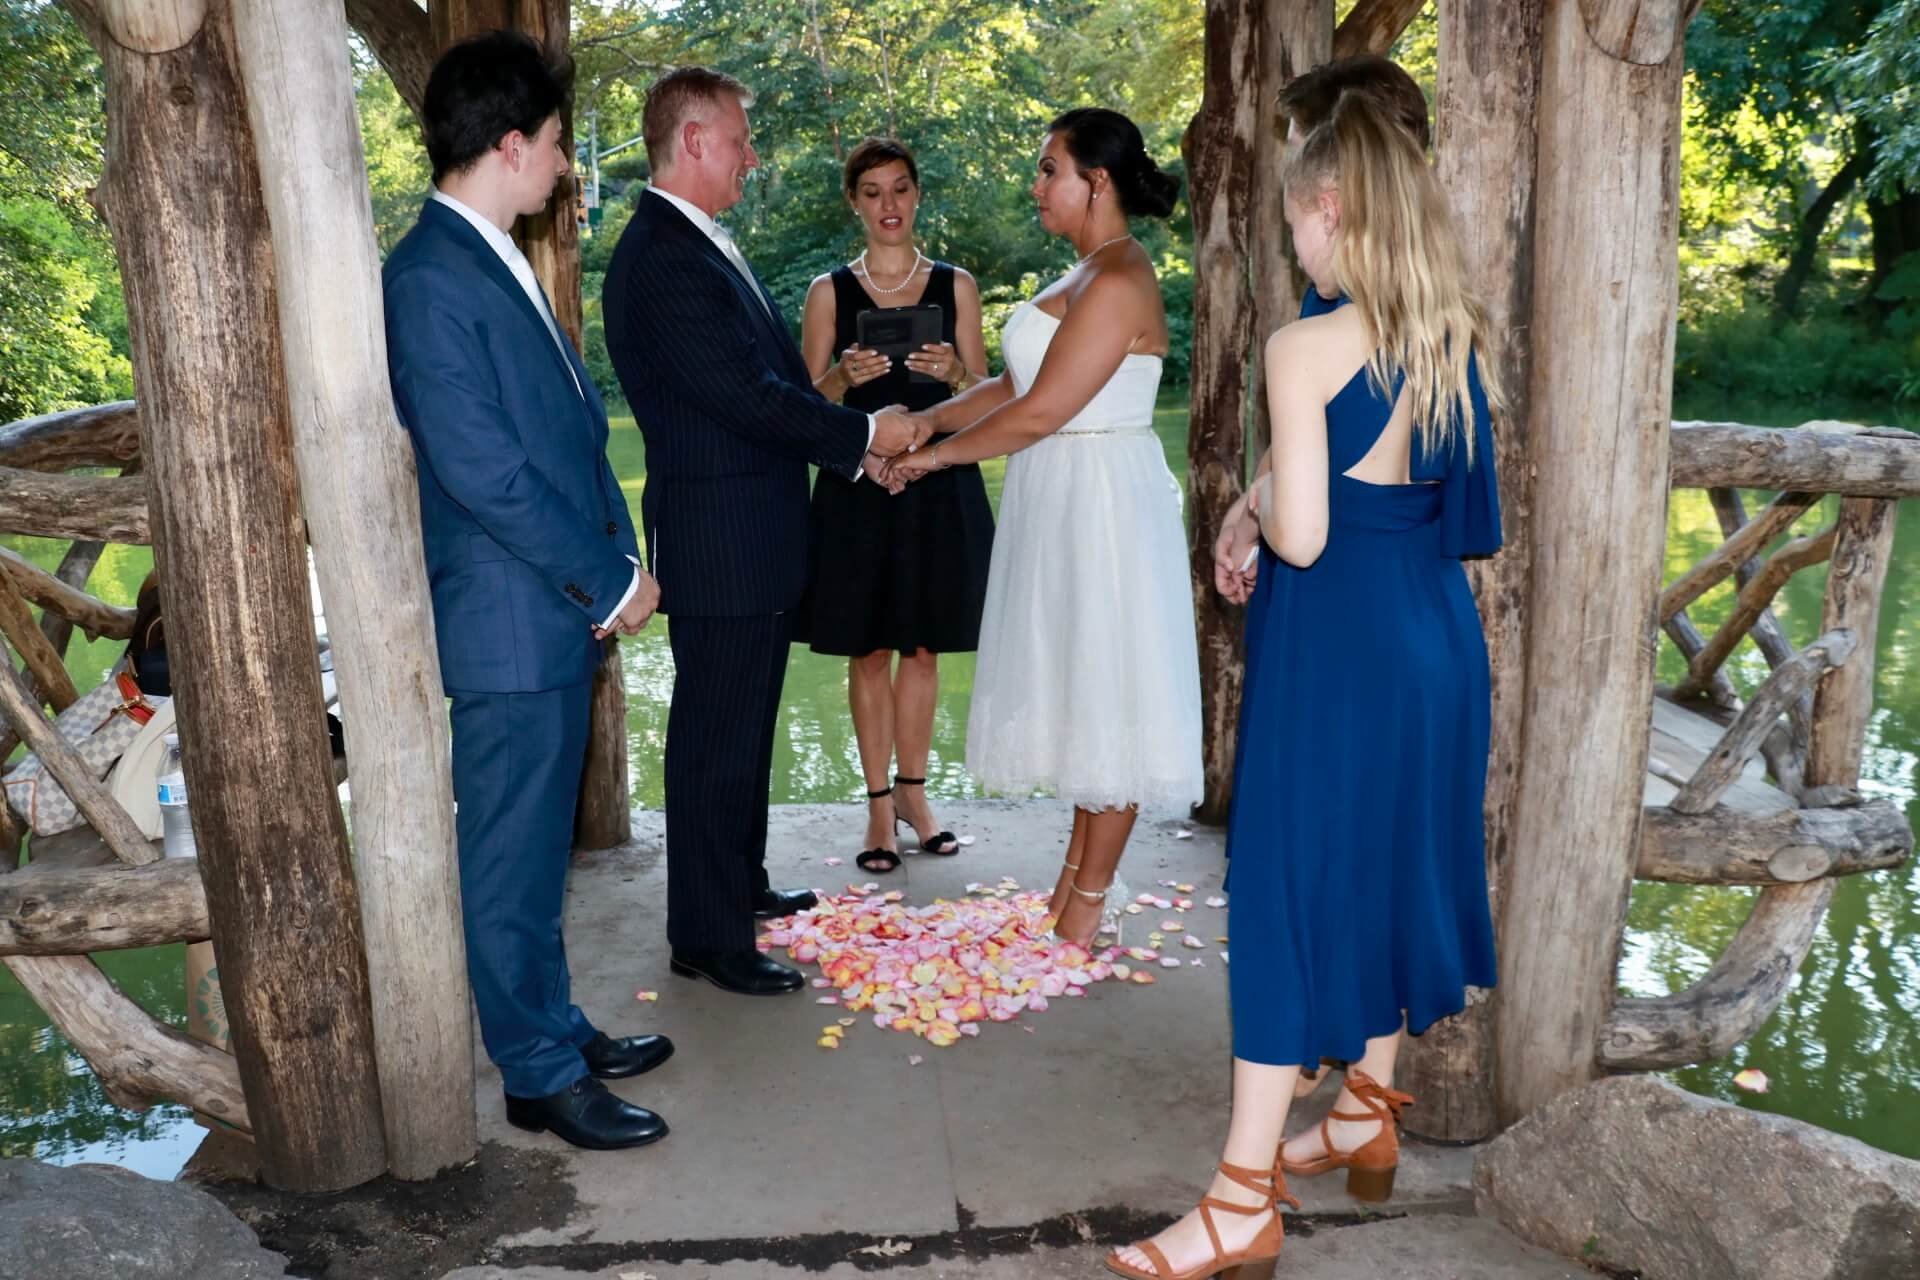 Bilingual Wedding Ceremony in Wagner Cove in Central Park with Veronica Moya